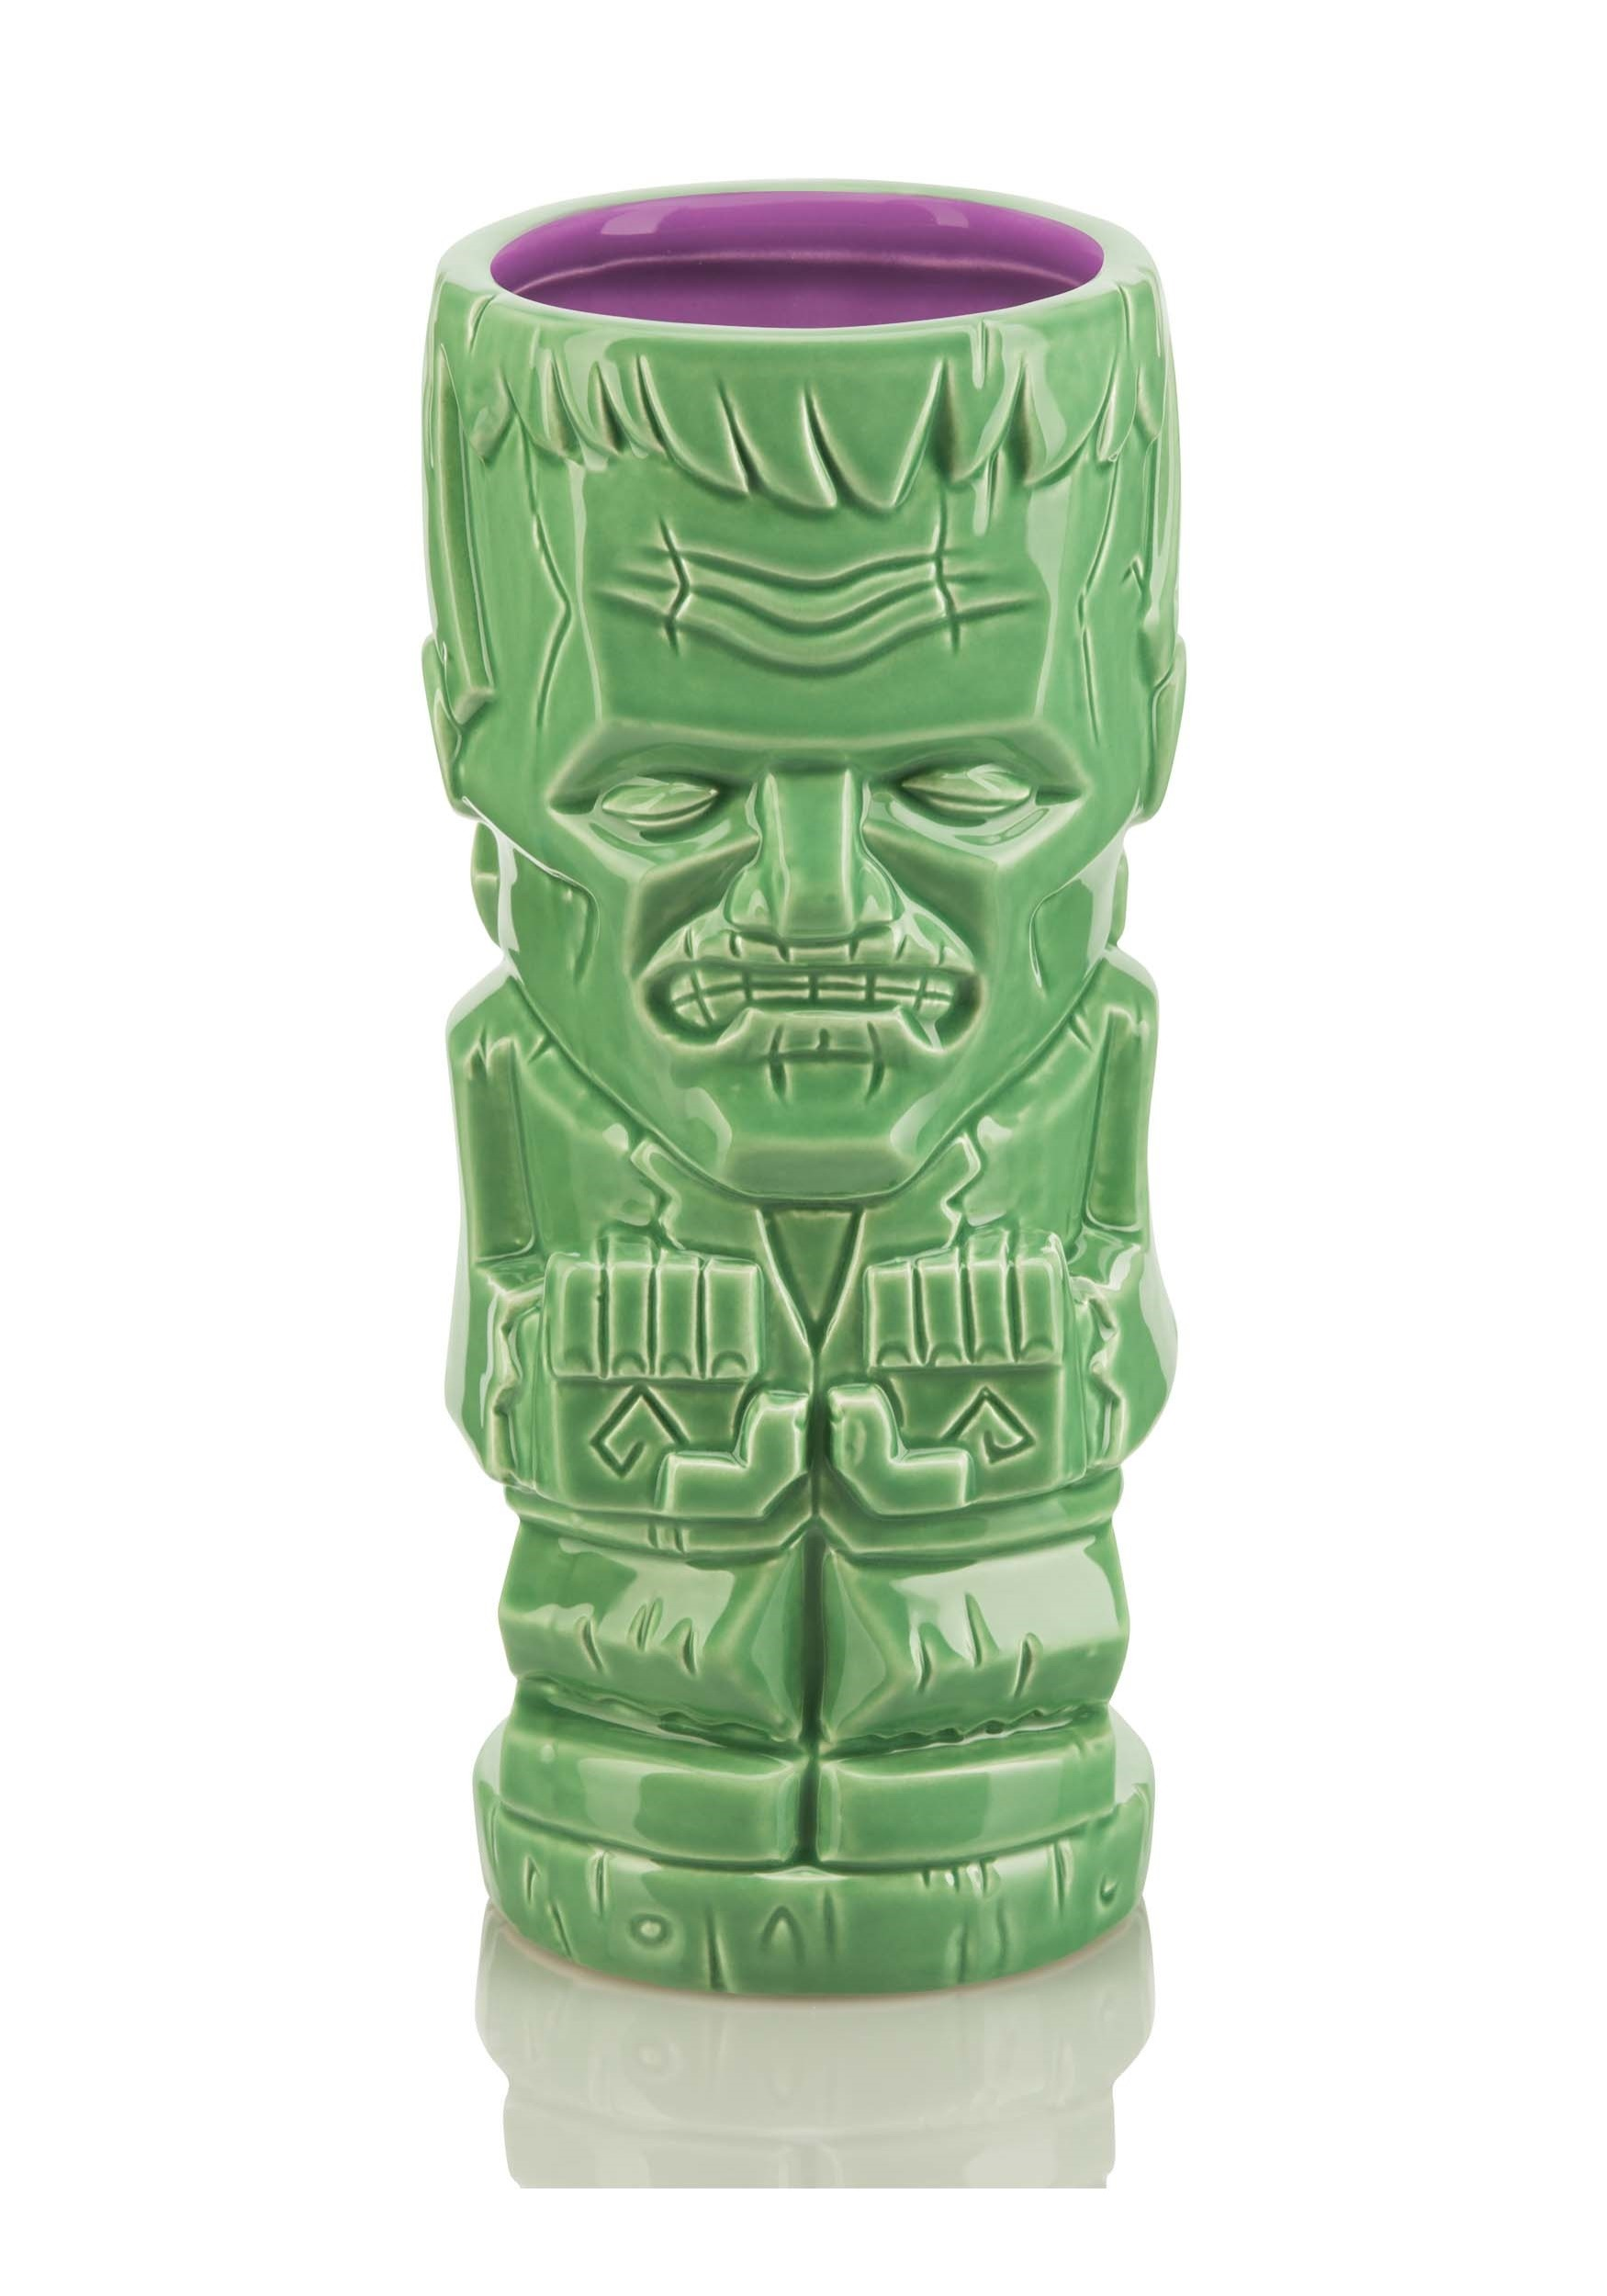 Geeki Tikis Monsters Frankenstein Mug - 18oz